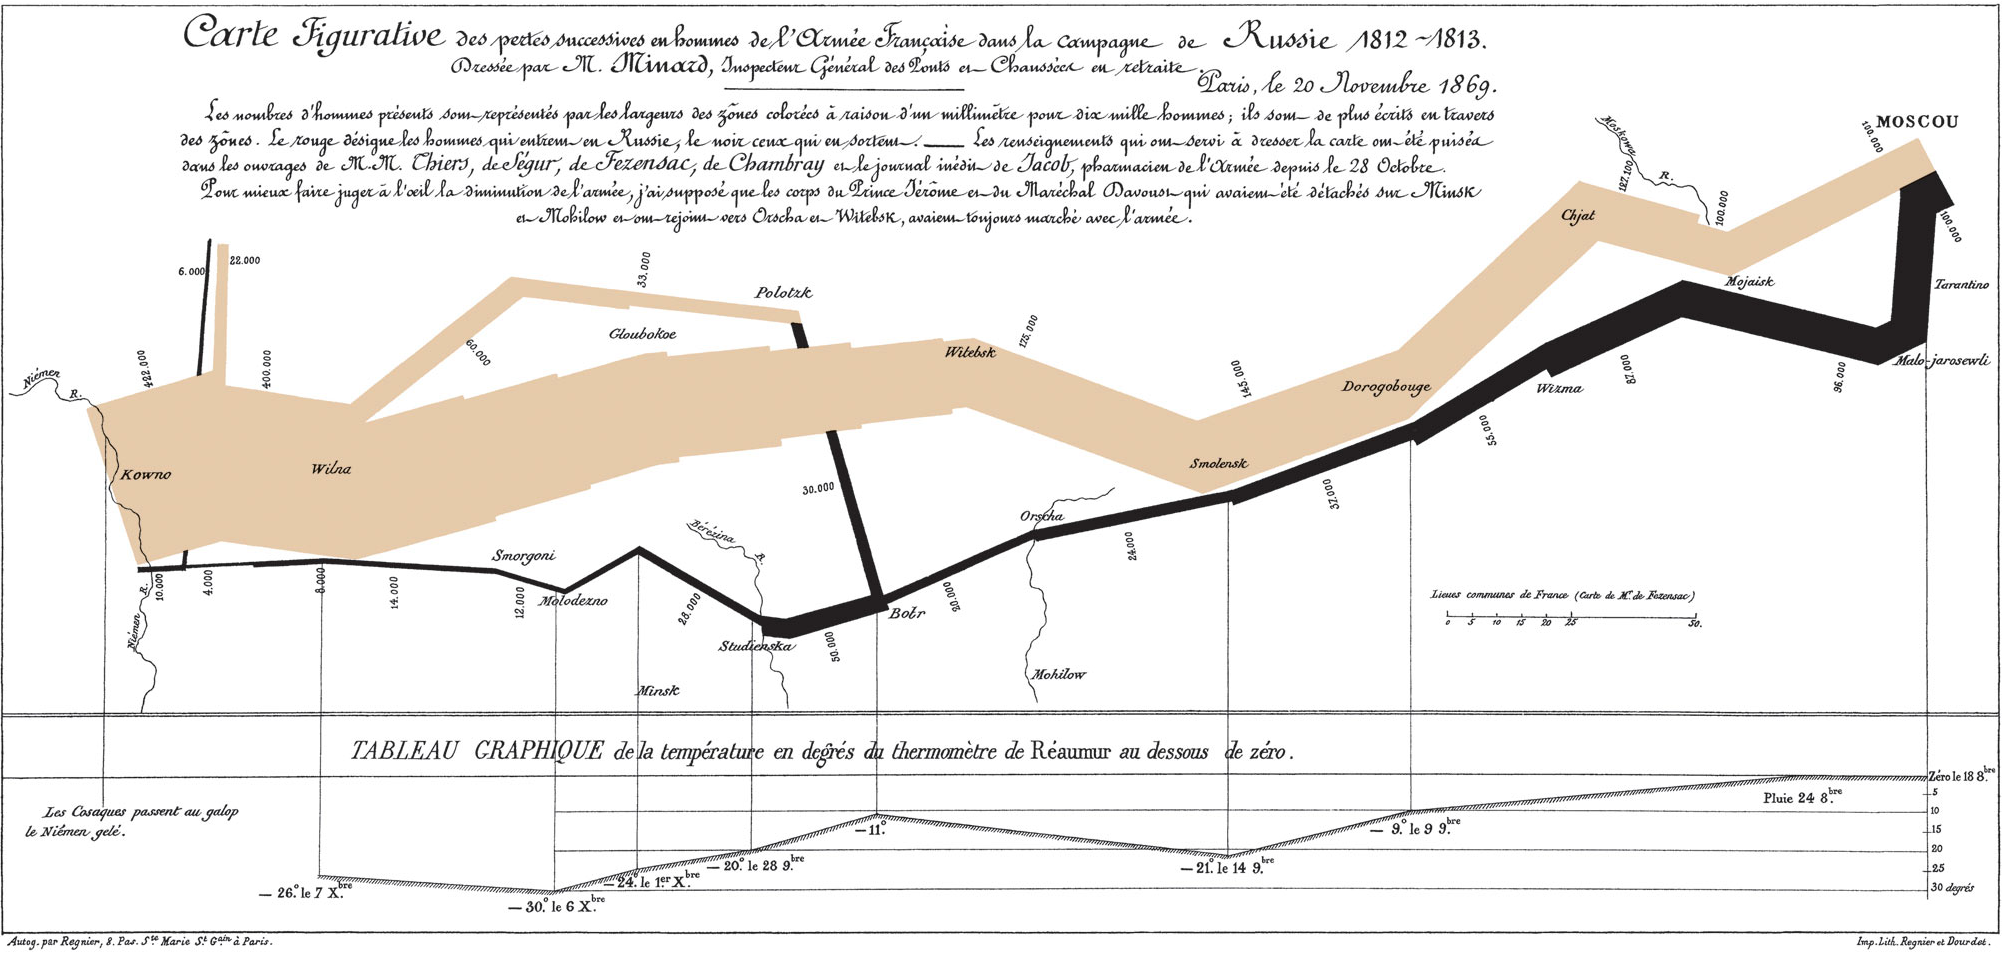 napoleons-march-to-moscow-the-war-of-1812_50290b656ab82.png